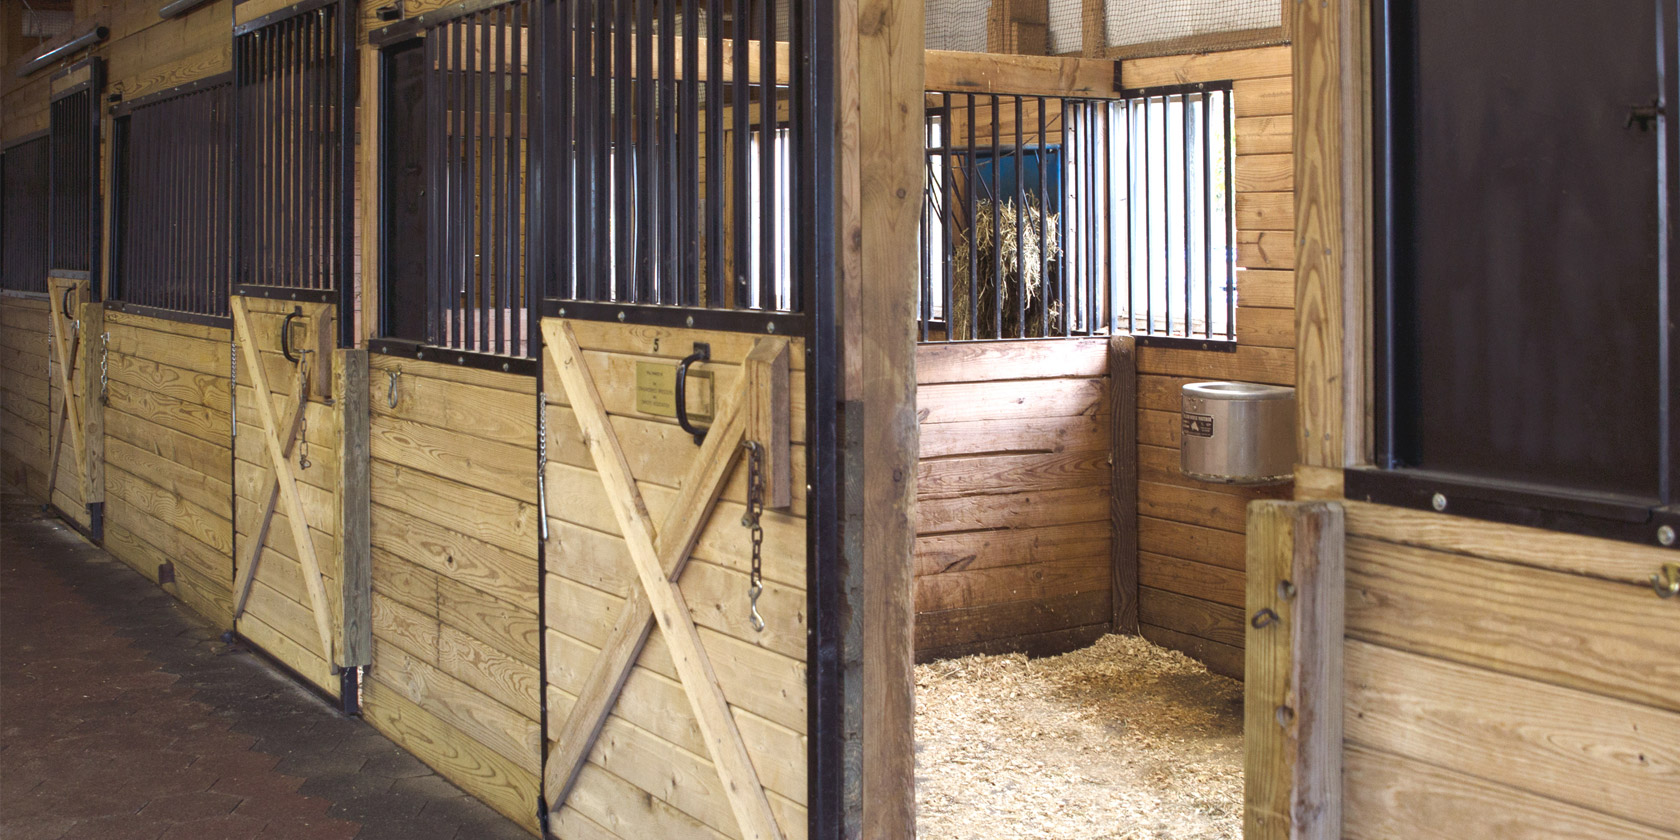 Red Barn These 14 stalls include automatic waterers and hay racks. Funding for the stalls was provided by donations from the horse industry.